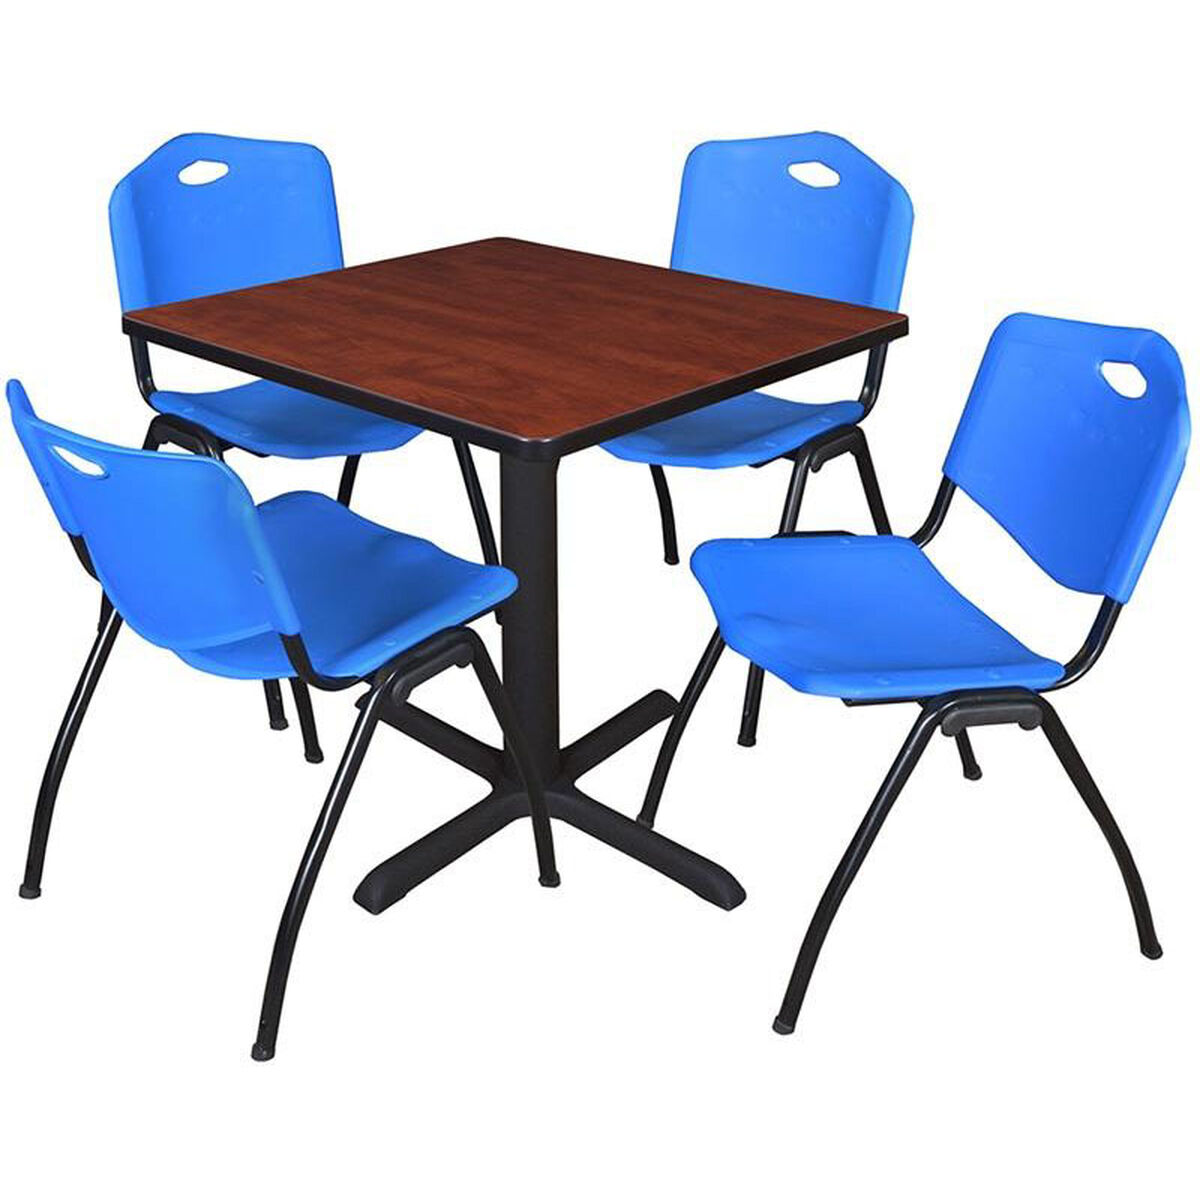 Square Table And Stack Chair Set TBCHBE Bizchaircom - Break room table and chair sets